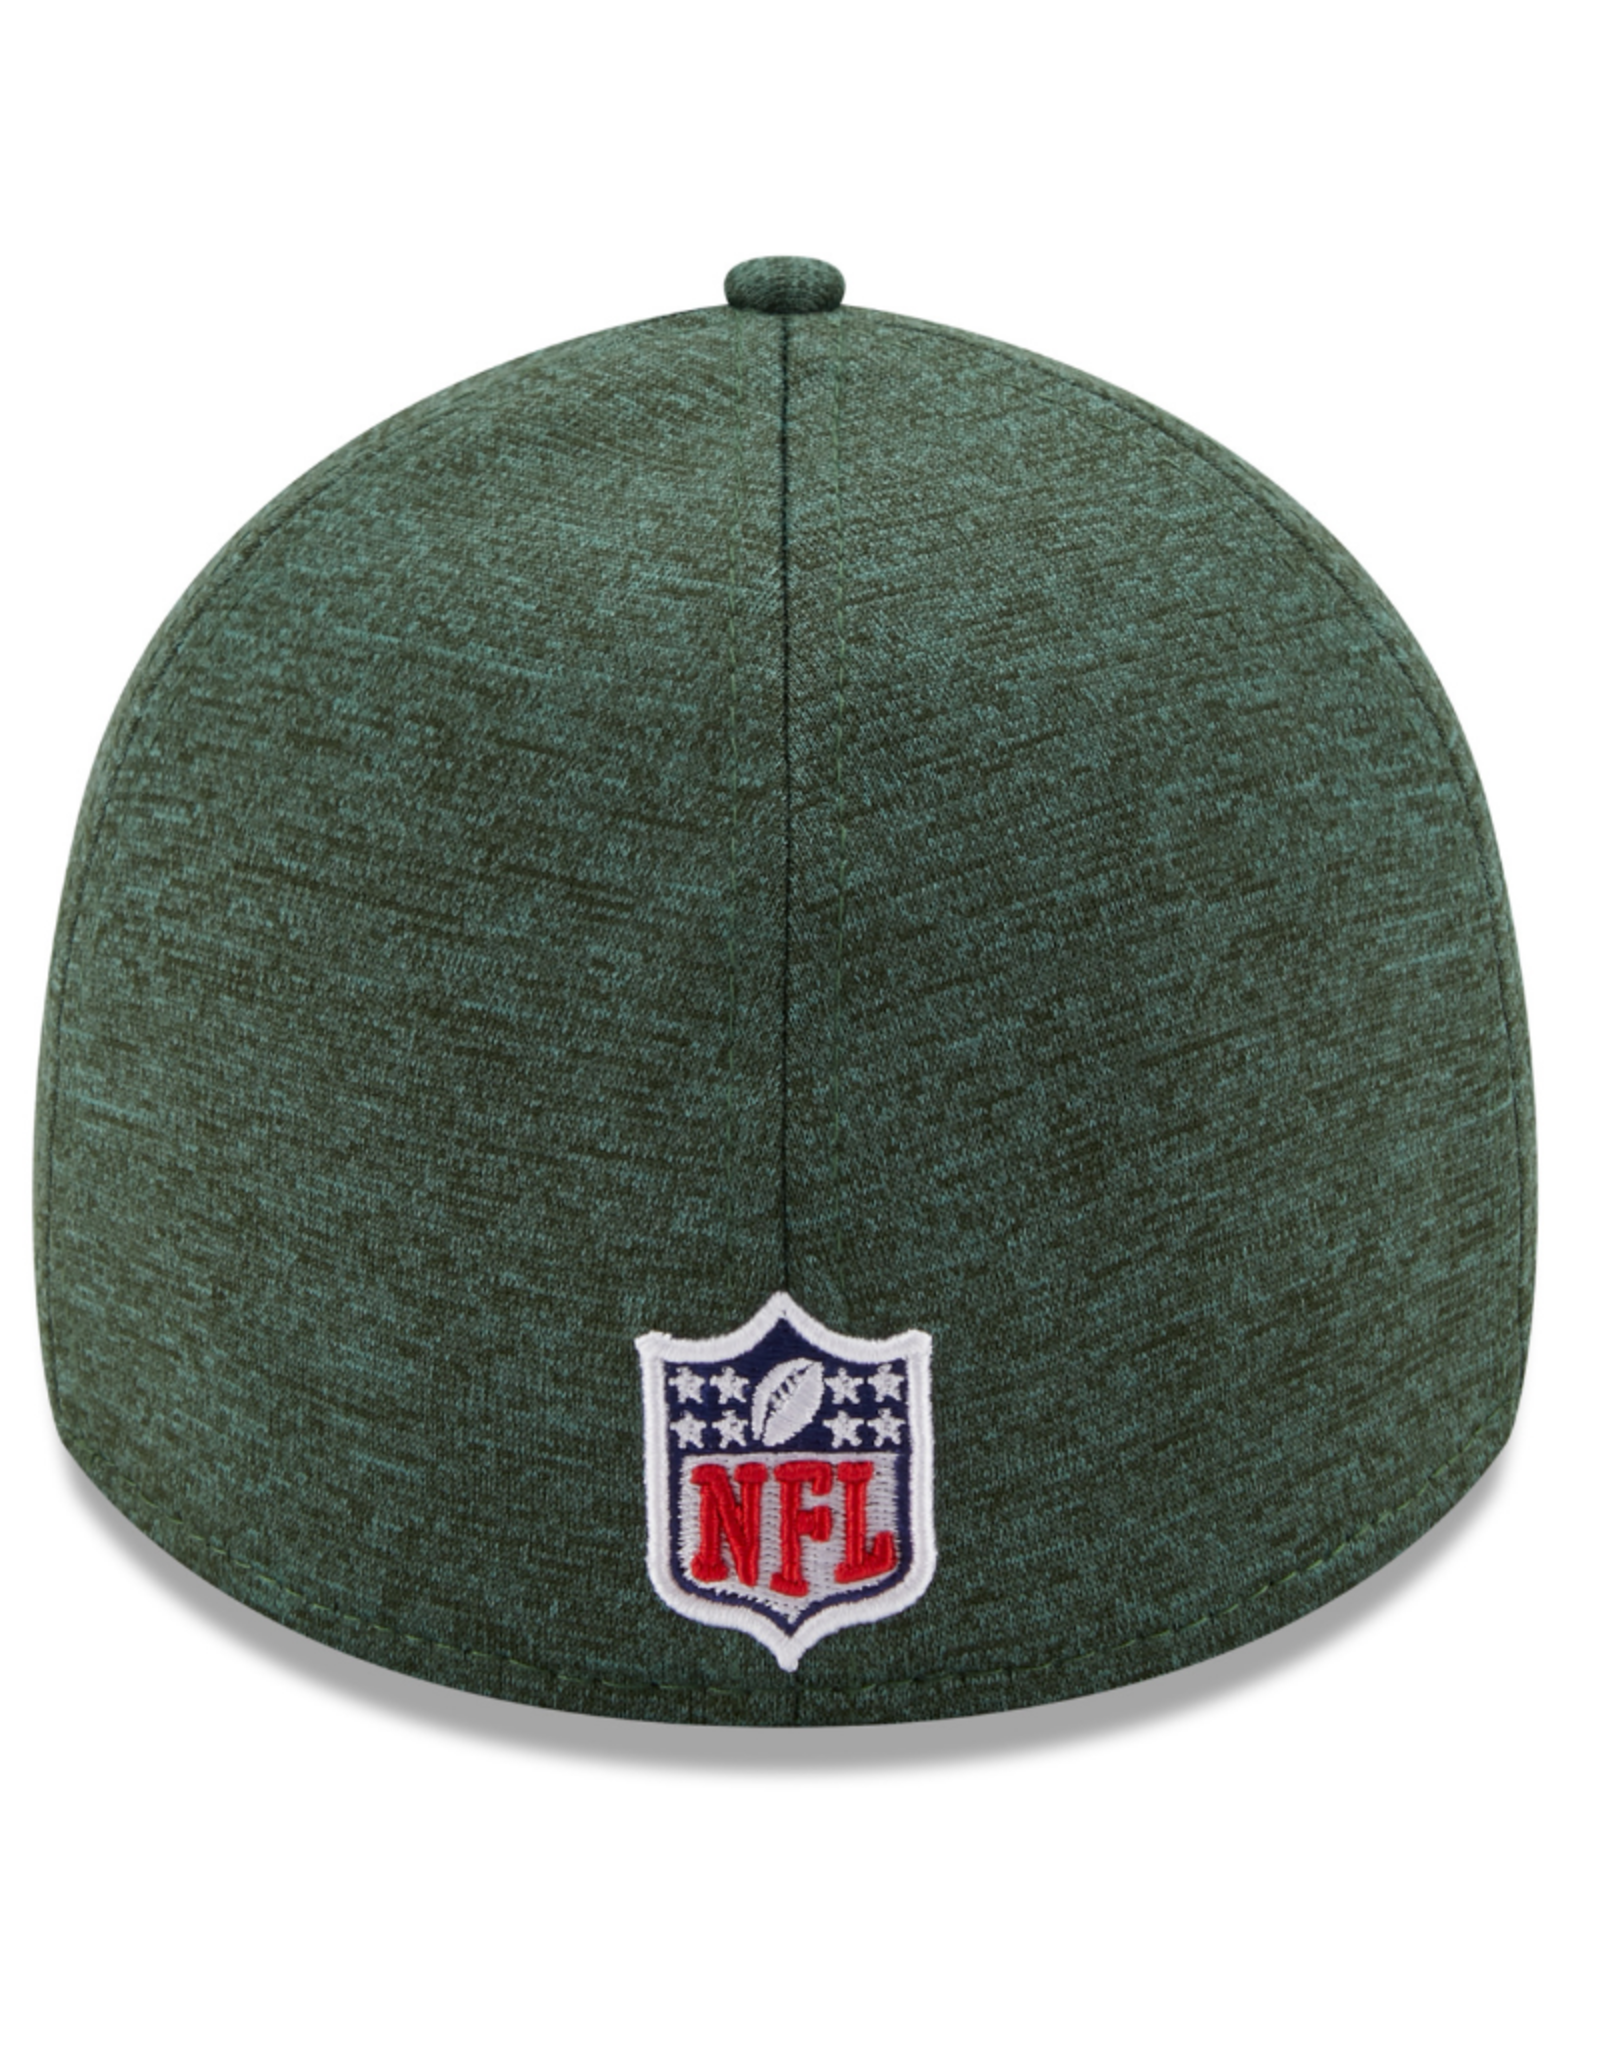 New Era Adult 39THIRTY Shadow B3 Hat Green Bay Packers Green